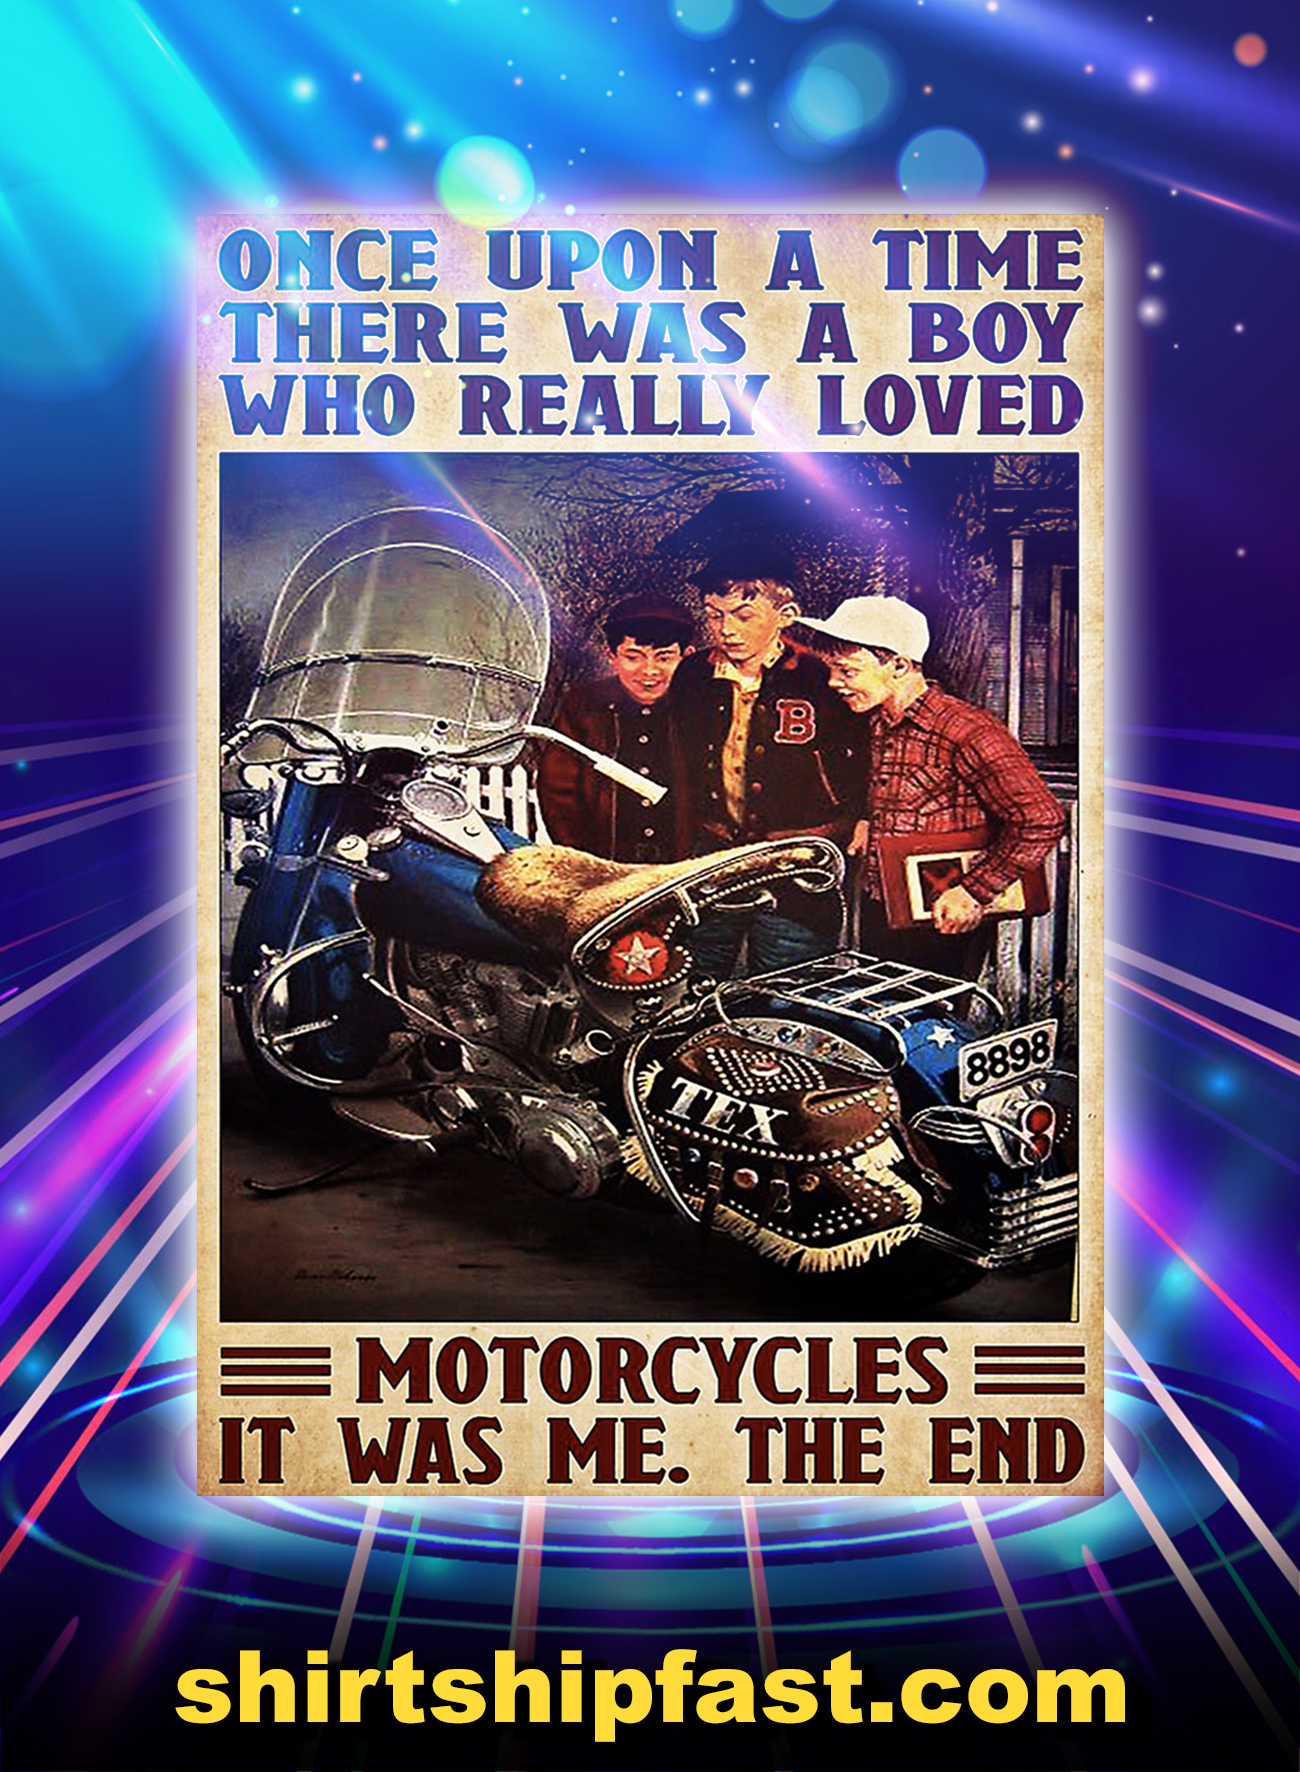 There was a boy who really loved motorcycles poster - A1